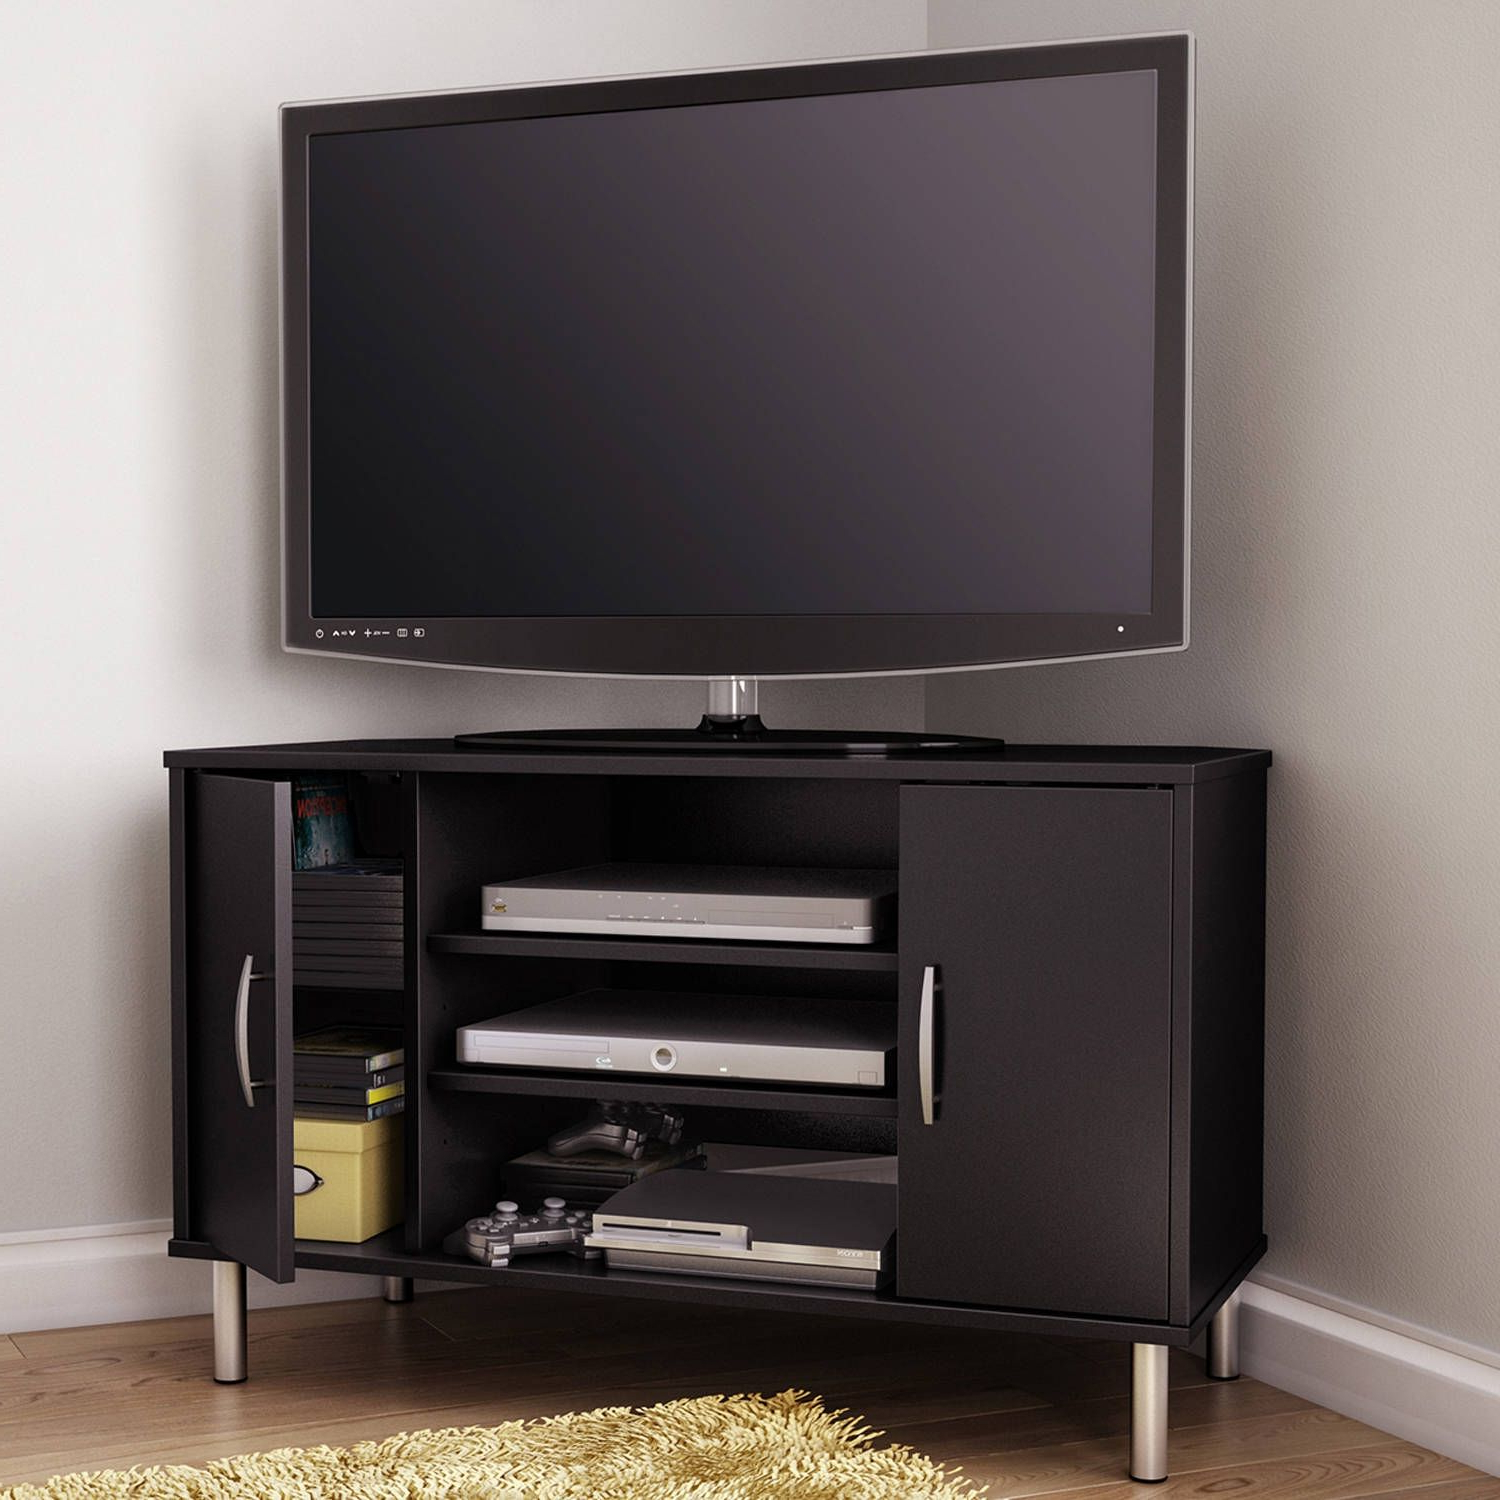 Best And Newest Corner Tv Tables For Flat Screens (View 5 of 20)